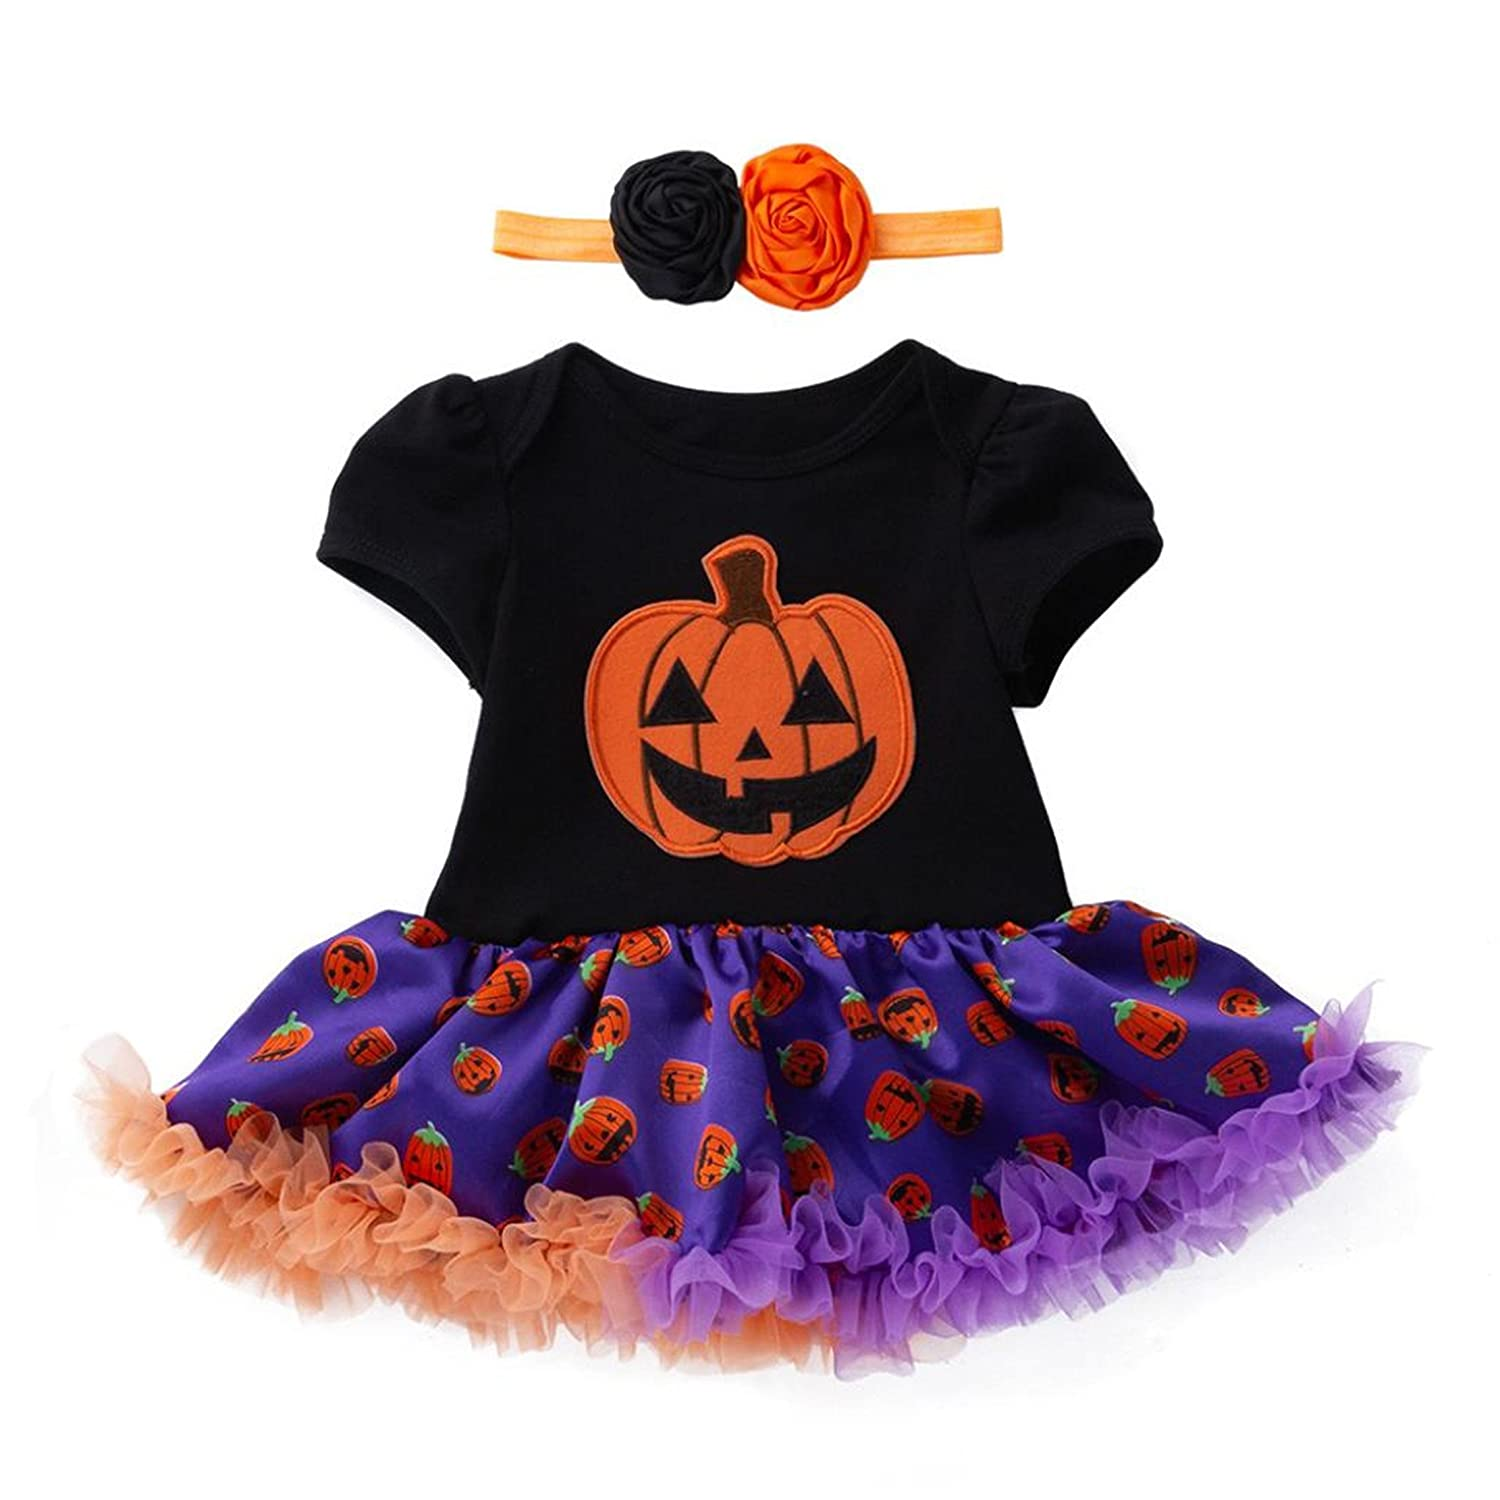 Happy Event Halloween Infant Toddle Baby Girls Cotton Pumpkin Costume Dresses Outfits Sets Coat + Headband | Halloween Infant Pumpkin Baby Girl Romper Dress + Headband, Black